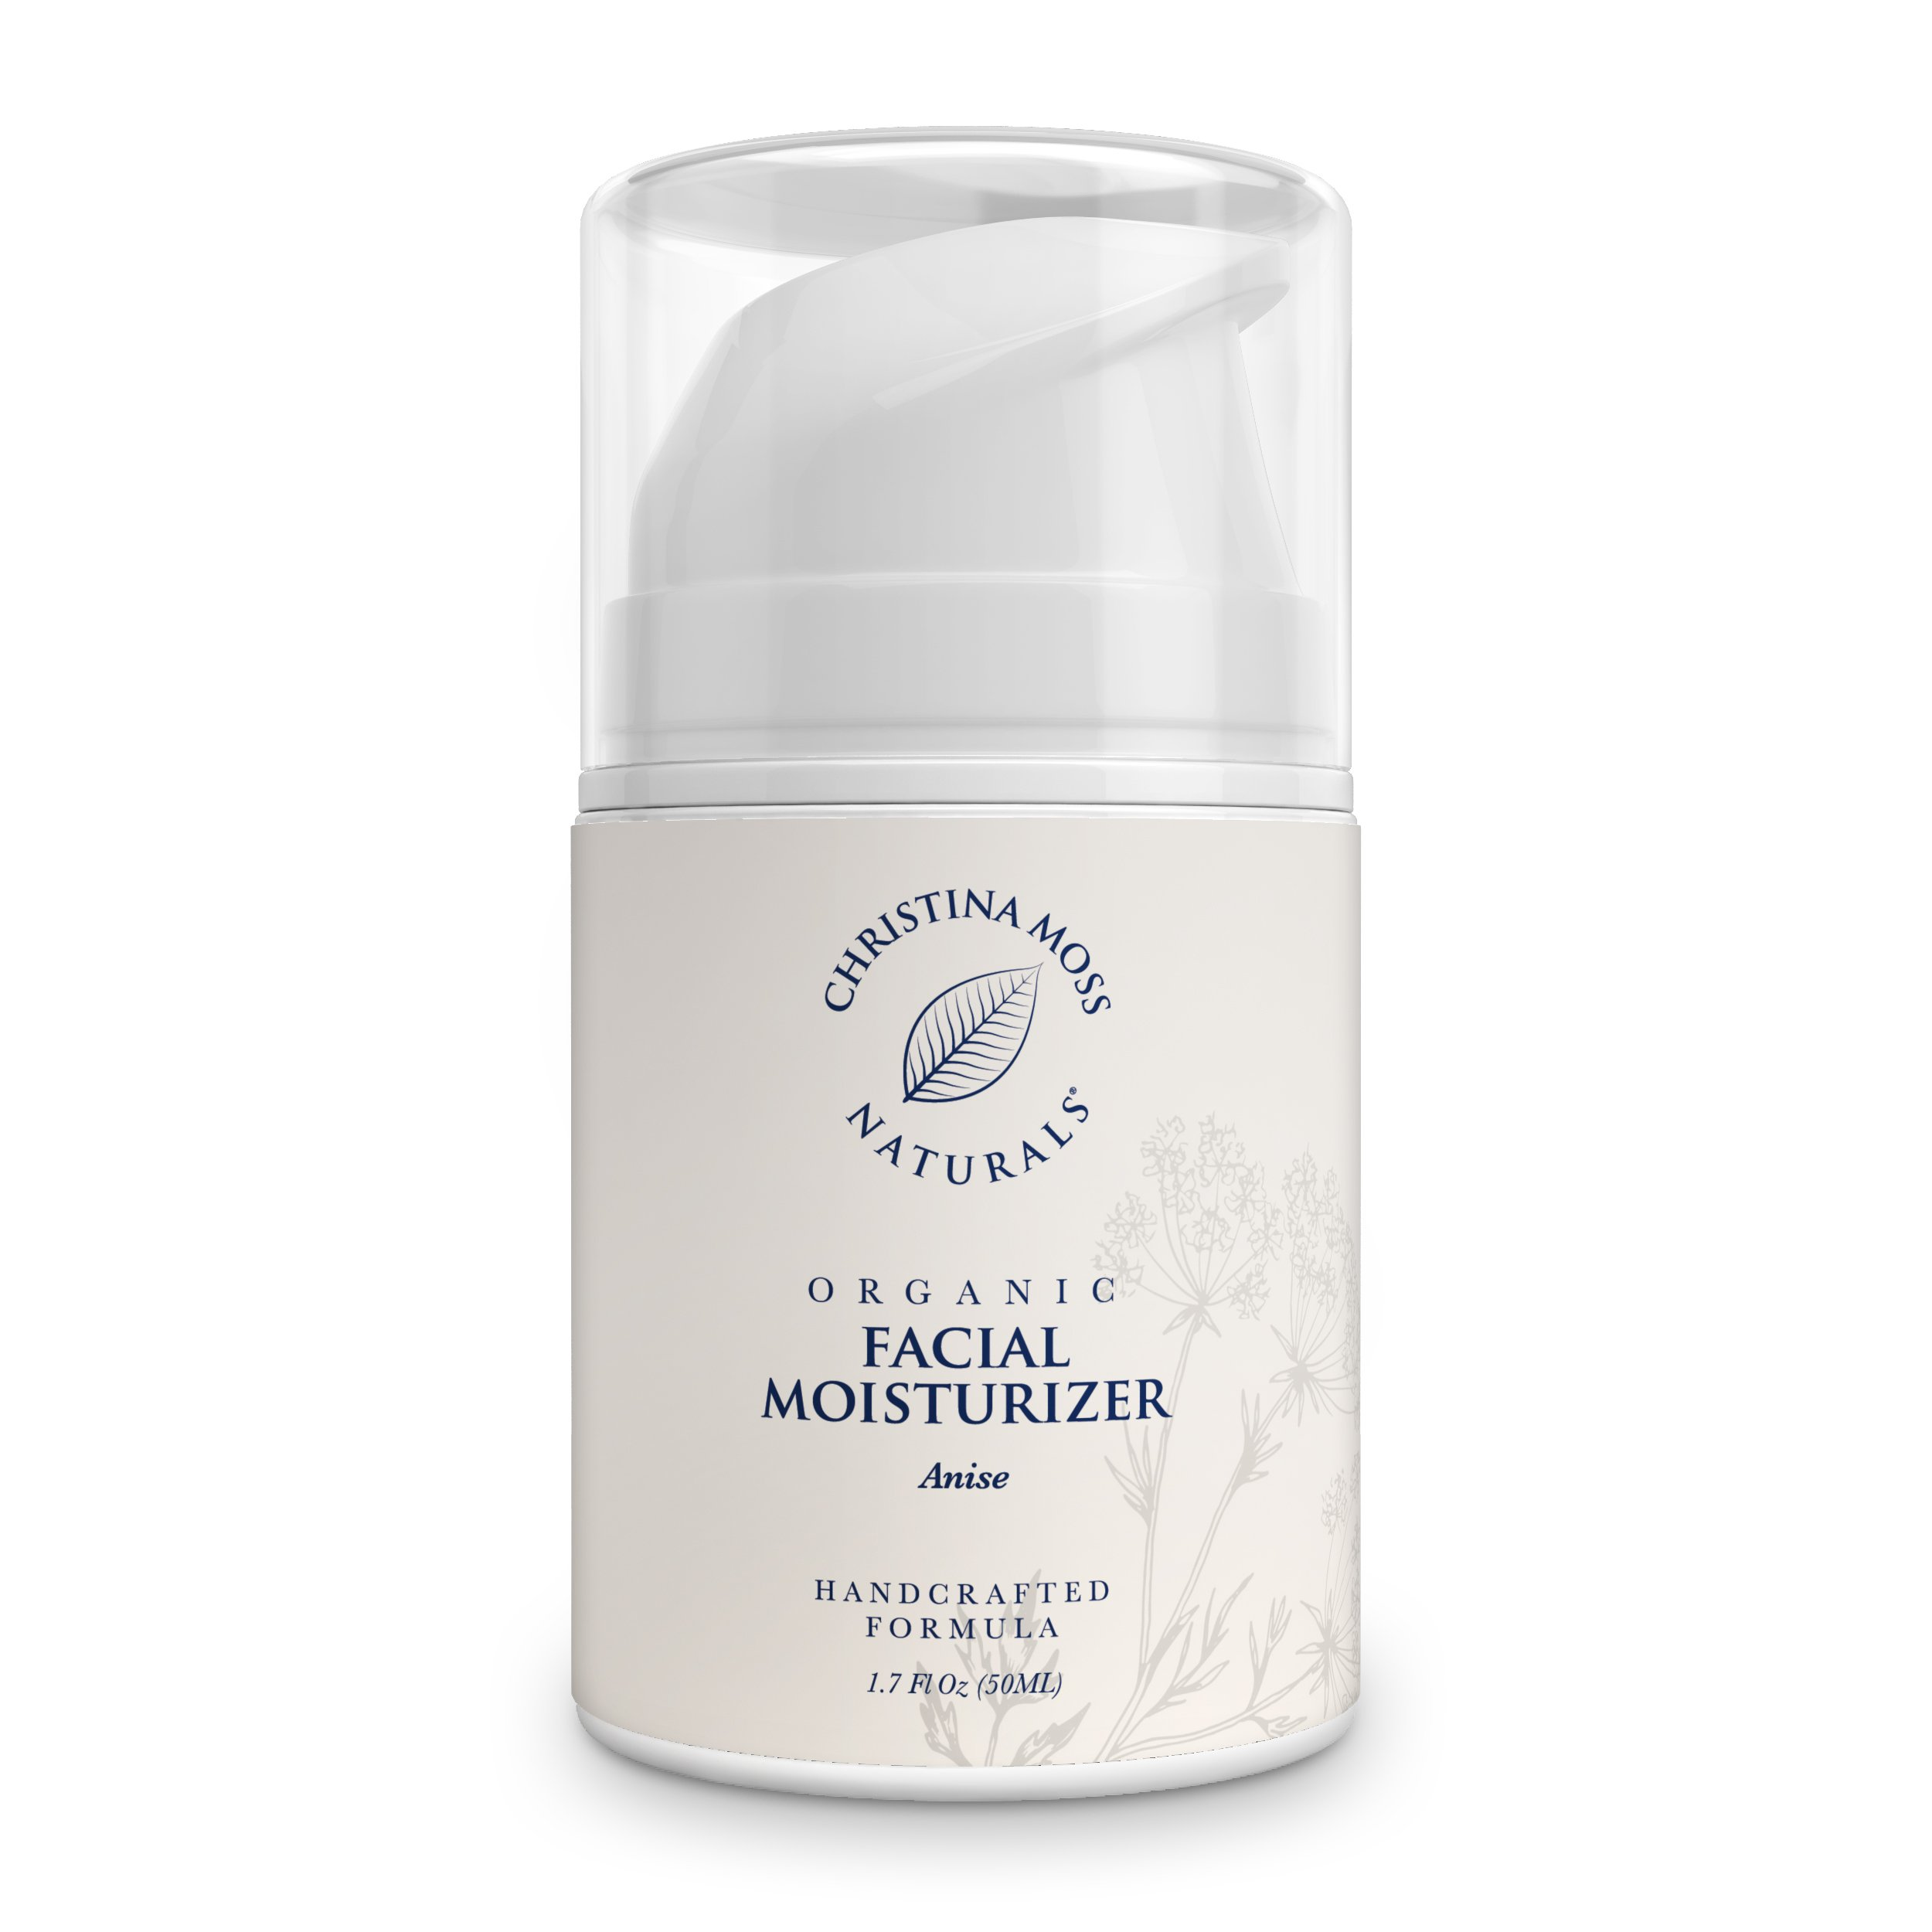 Facial Moisturizer - Organic & Natural Ingredients Face Moisturizing Cream for All Skin Types - Sensitive, Oily, Dry, Severely Dry - Anti-Aging & Anti-Wrinkle for Women & Men - Christina Moss Naturals by Christina Moss Naturals